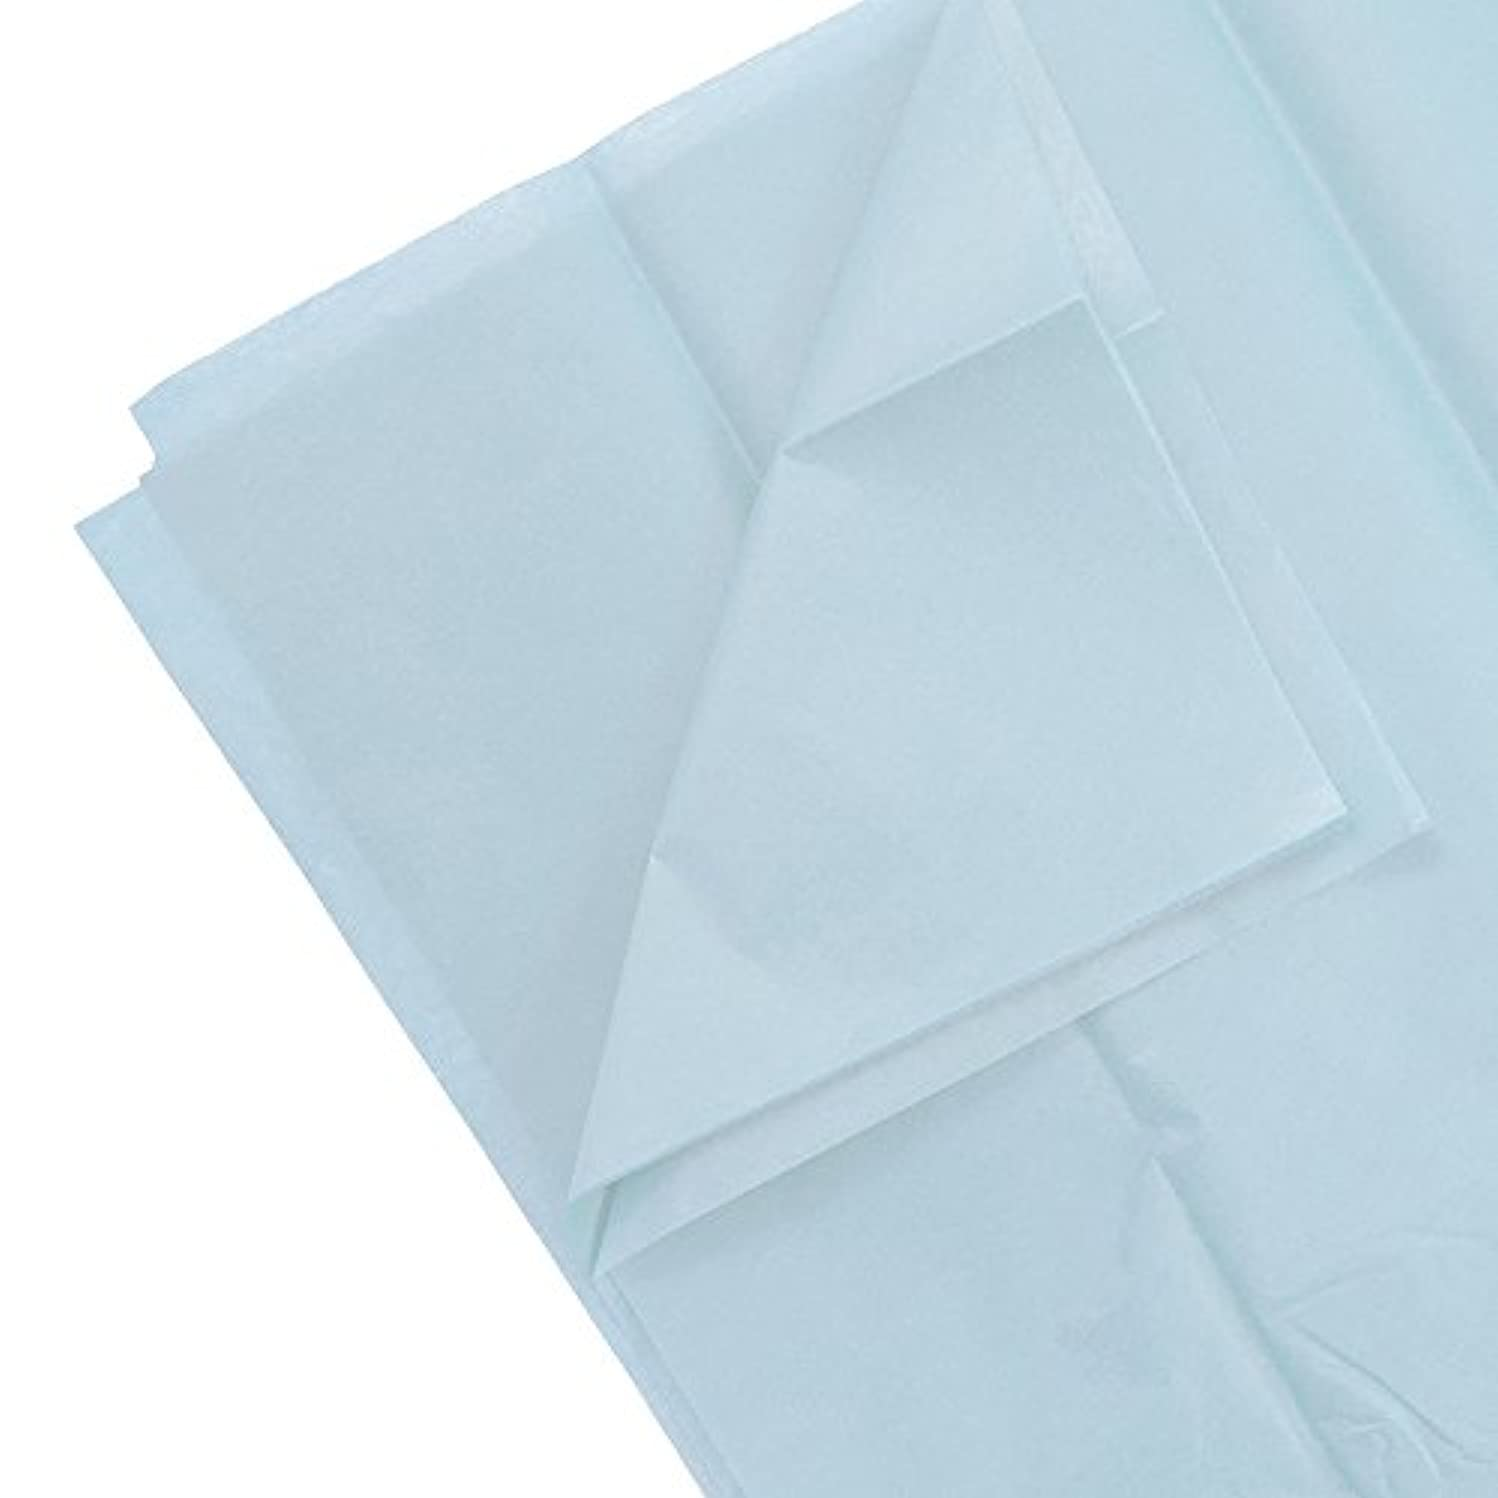 JAM PAPER Tissue Paper - Baby Blue - 10 Sheets/Pack